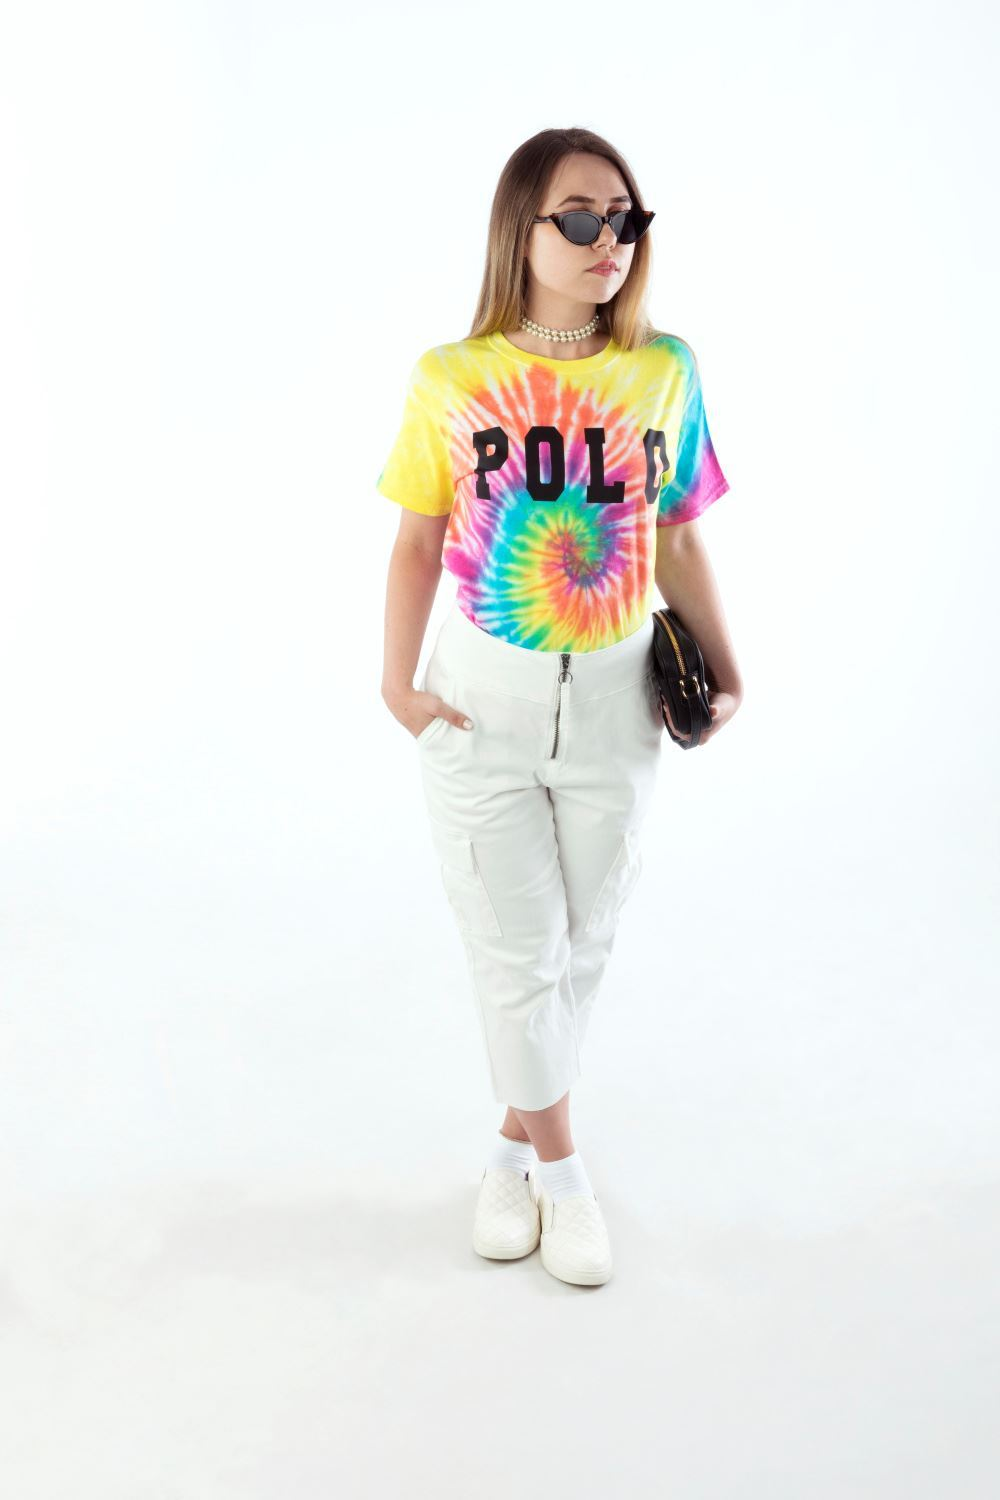 Tulip Spiral POLO-Inspired Tie-Dye T-shirt